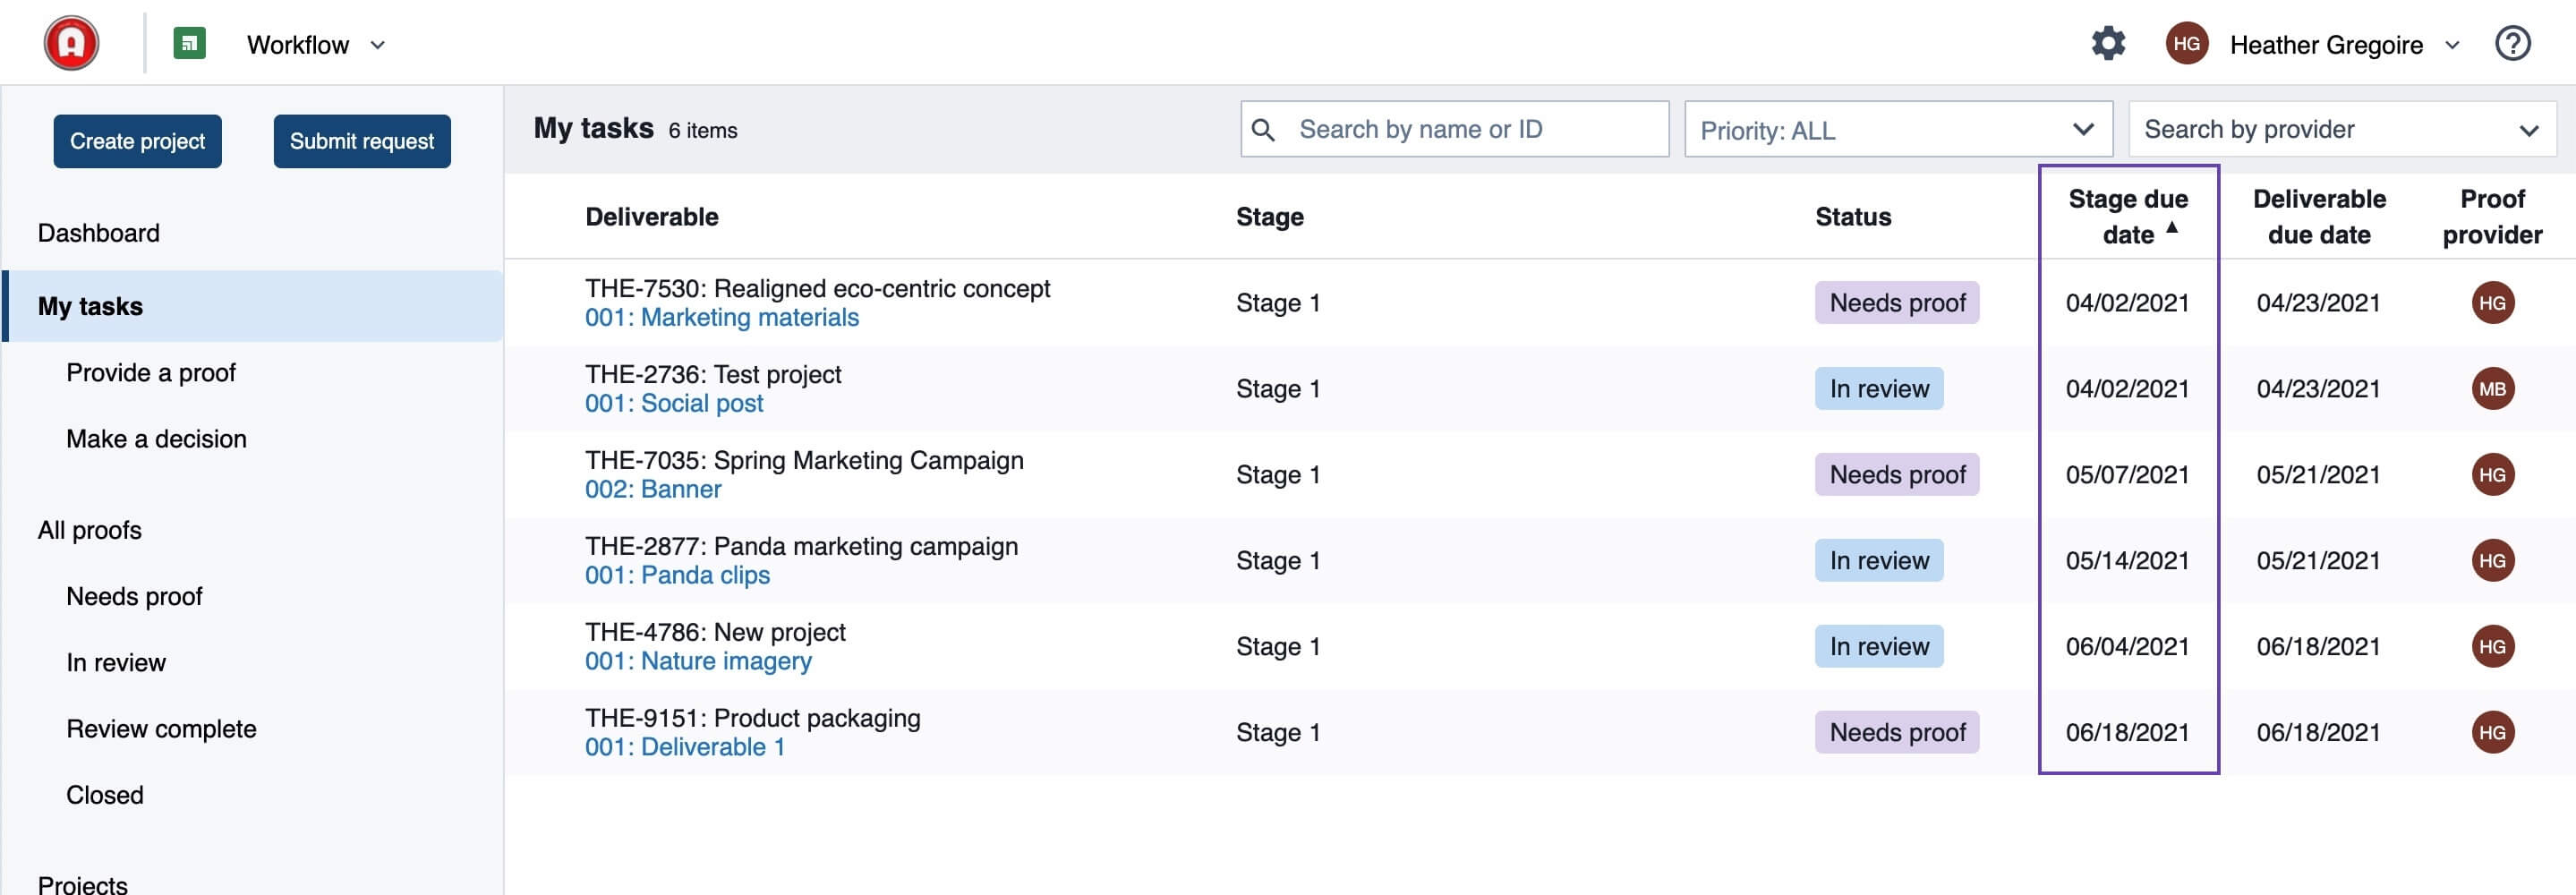 See stage due dates in the list view in Workflow.